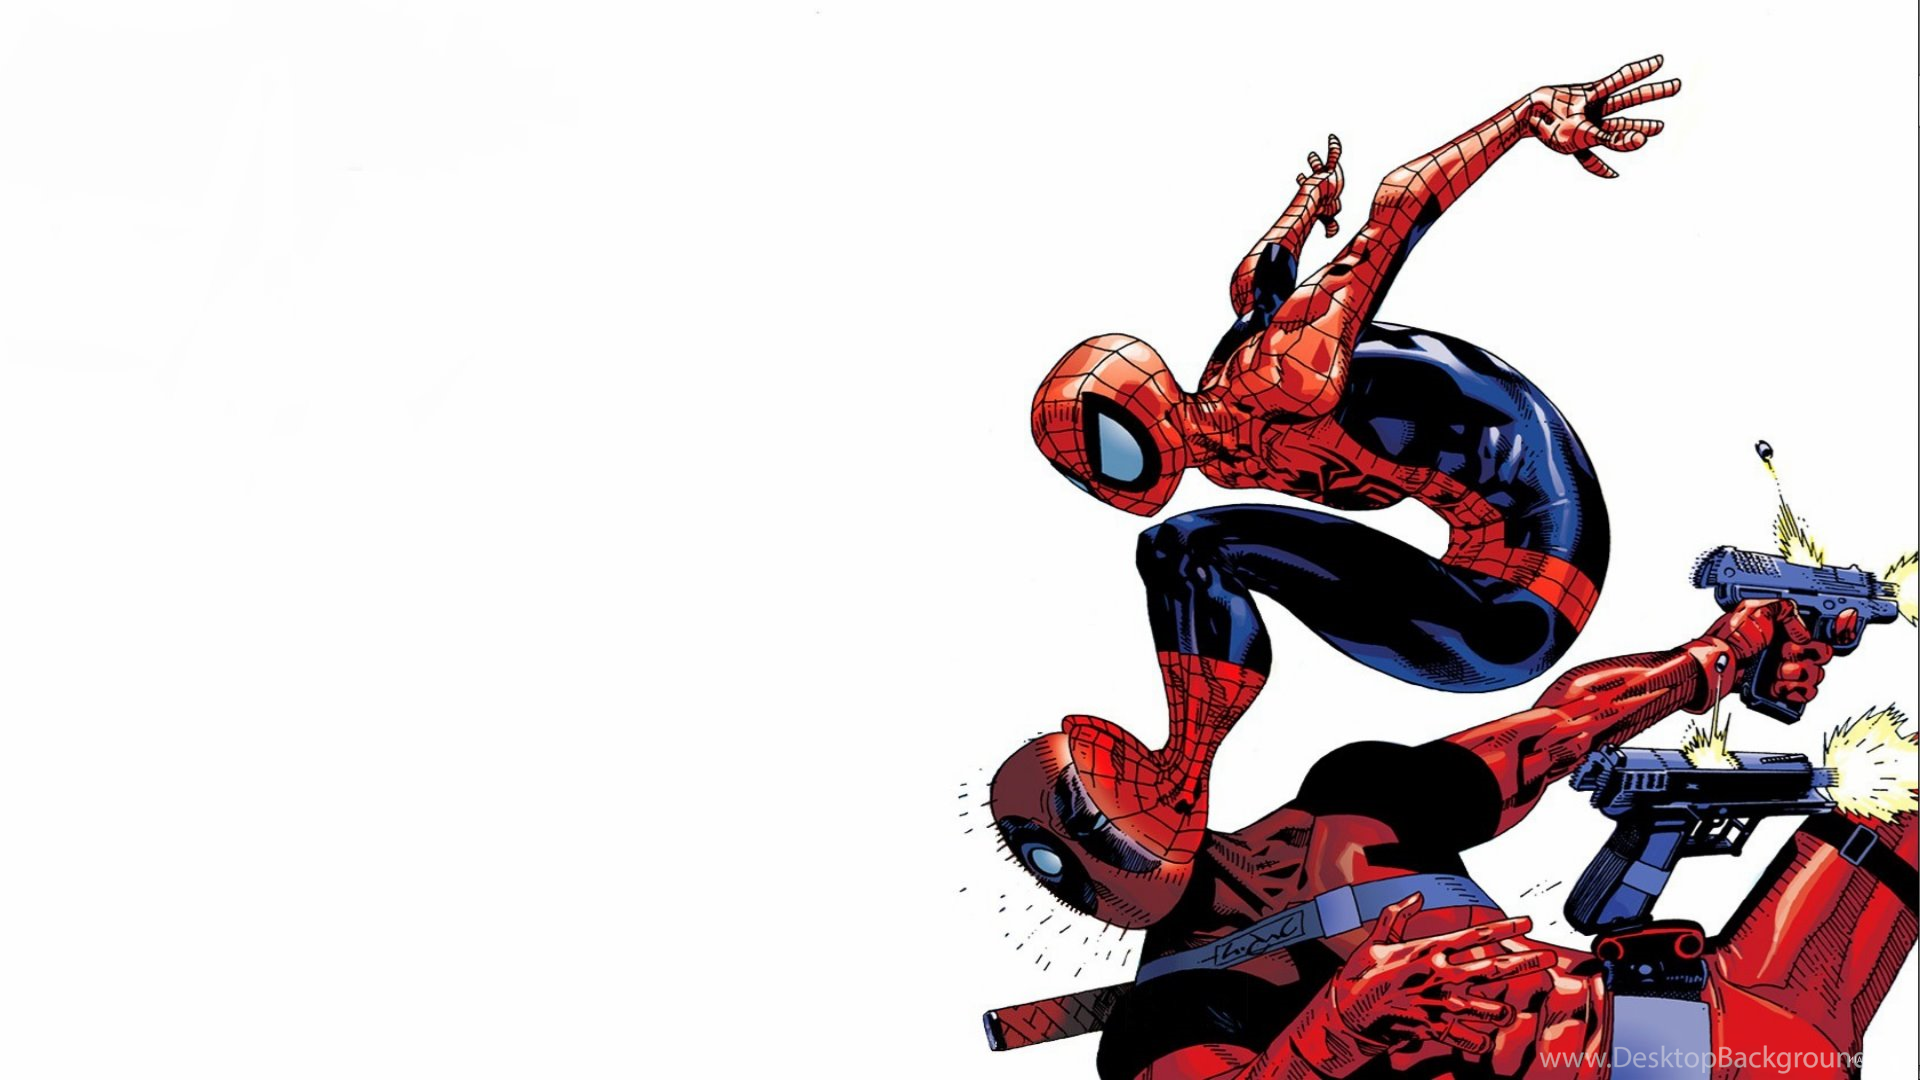 10 Best Spider Man 2099 Wallpaper Hd Full Hd 1920 1080 For: Dead Pool Wallpapers